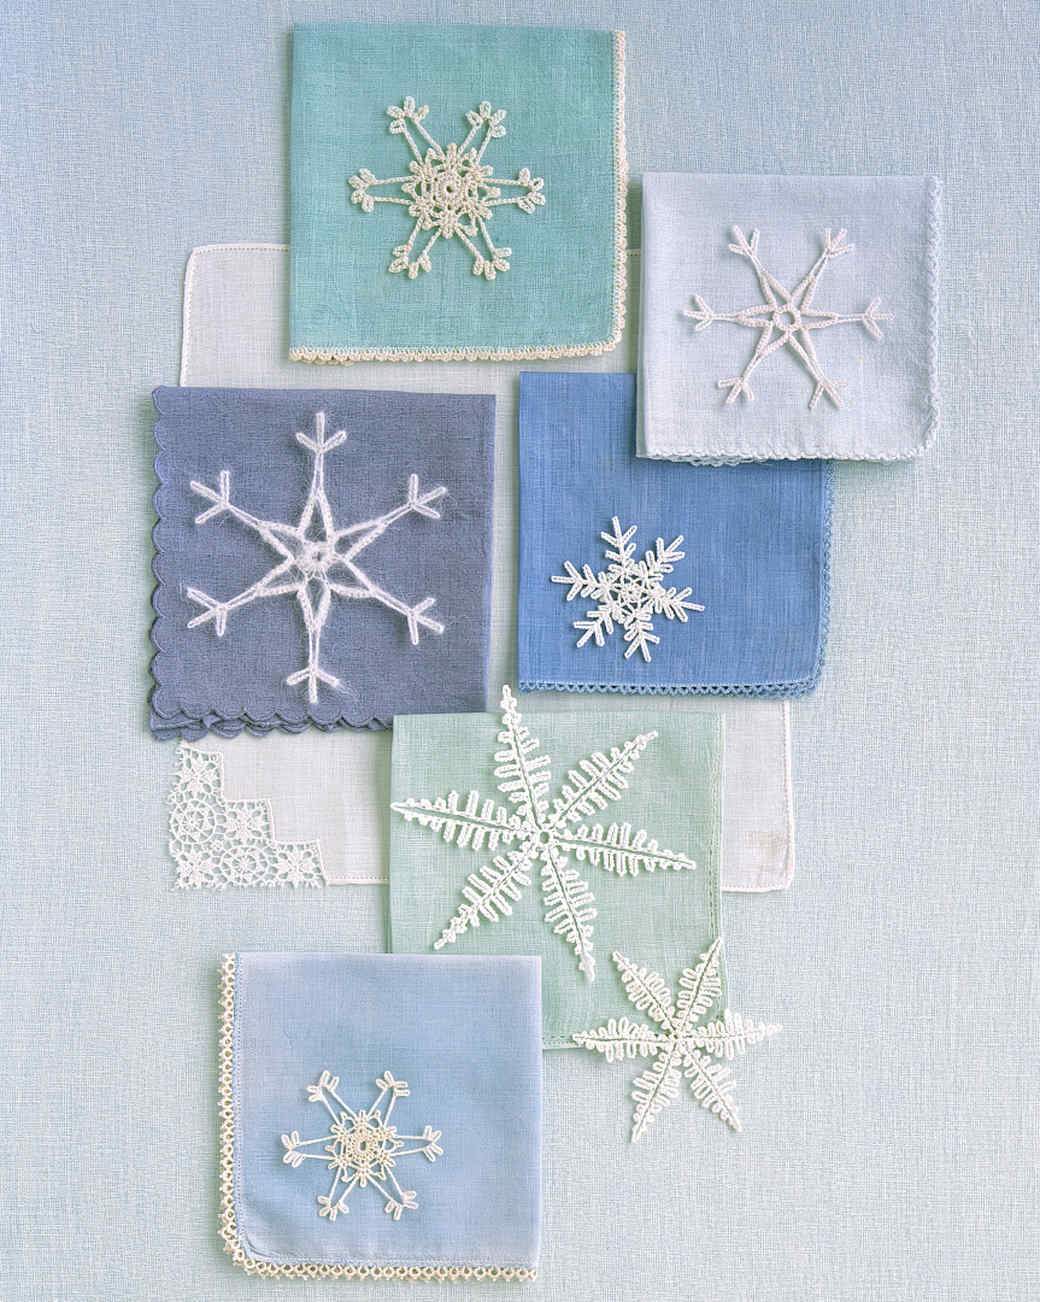 Crocheted snowflakes martha stewart crocheted snowflakes solutioingenieria Images